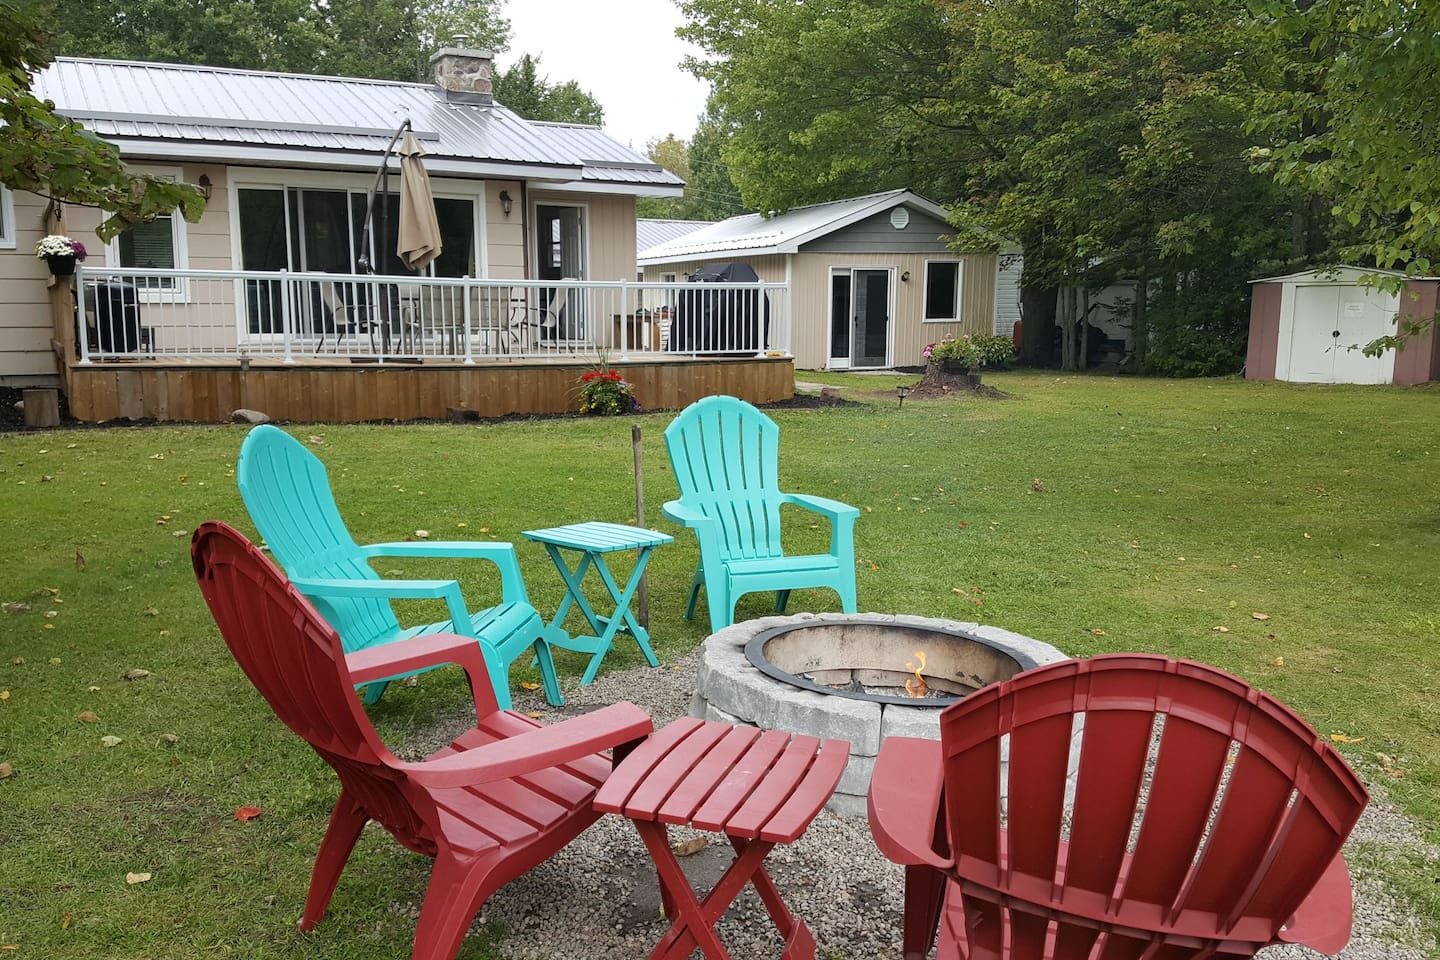 lake simcoe innisfil cottage original vacation beach barrie online rental ontario listing area cottages rentals on